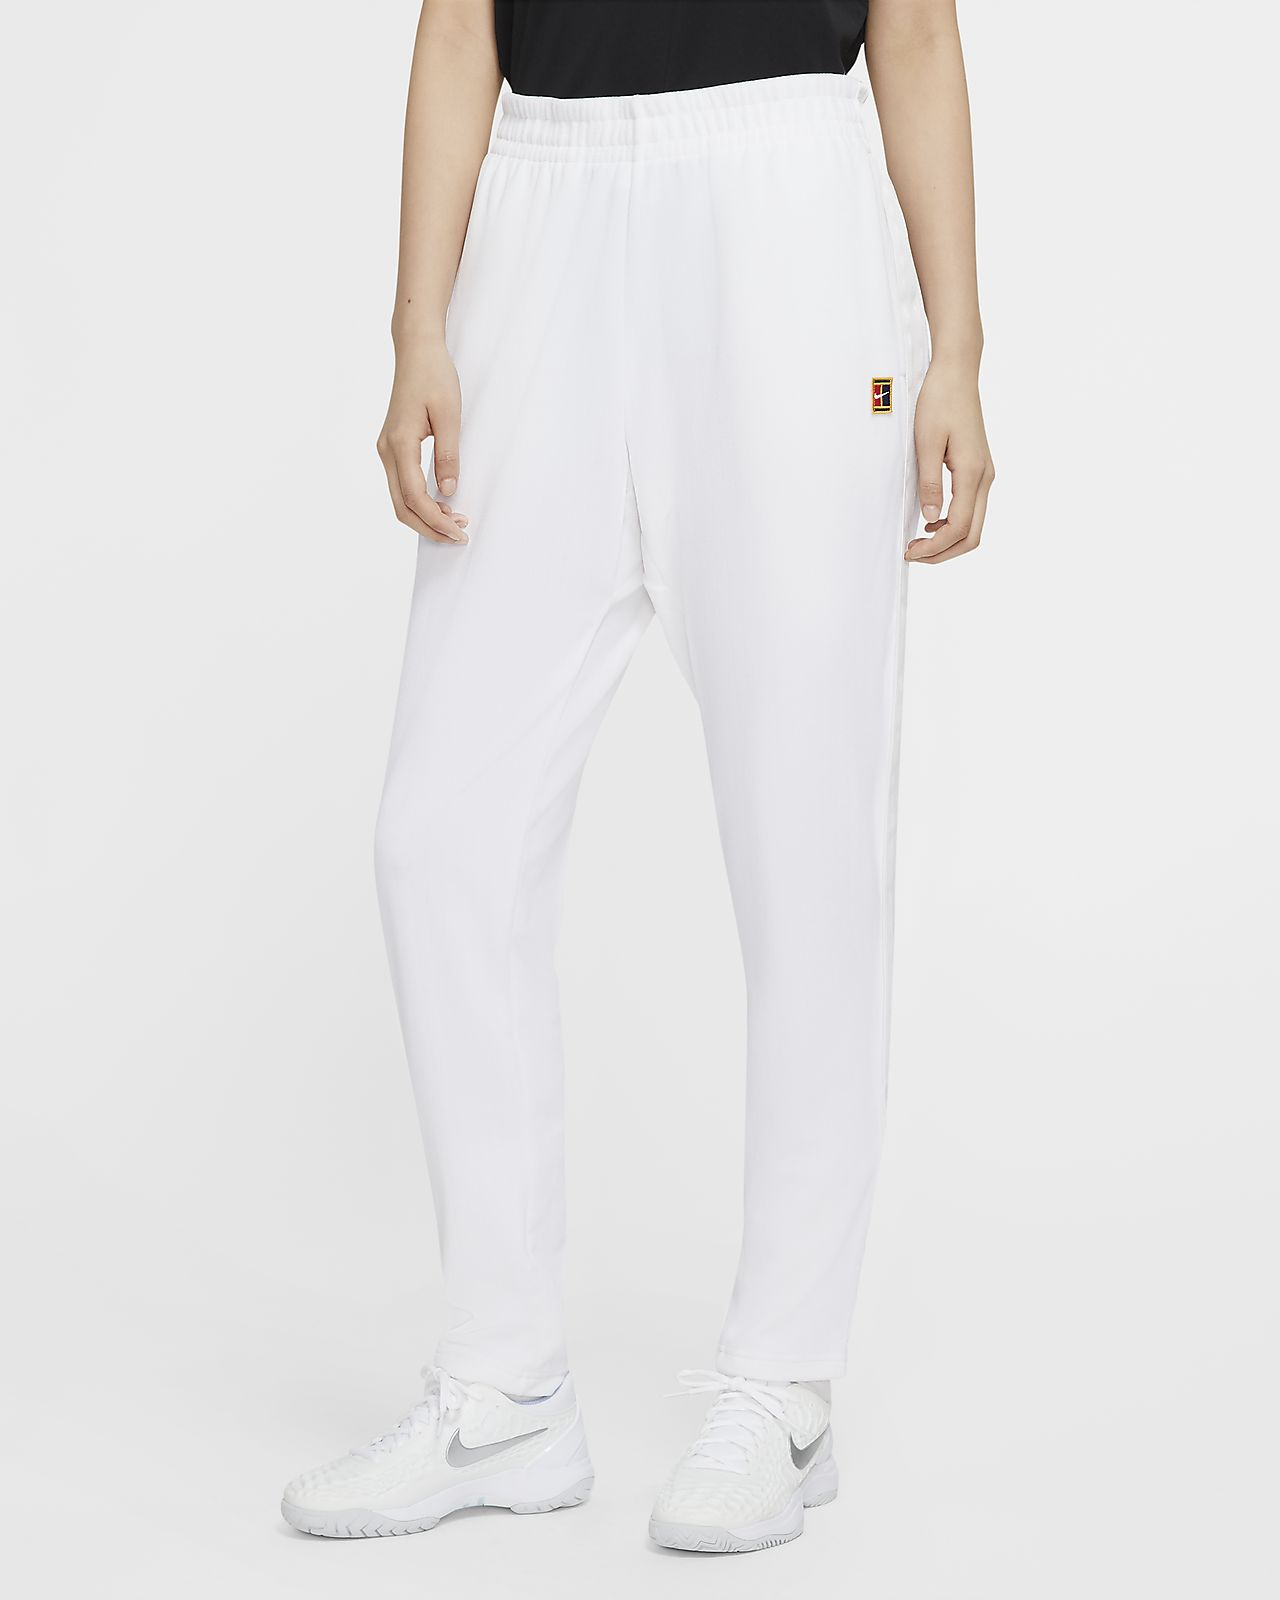 NikeCourt Tennis Trousers